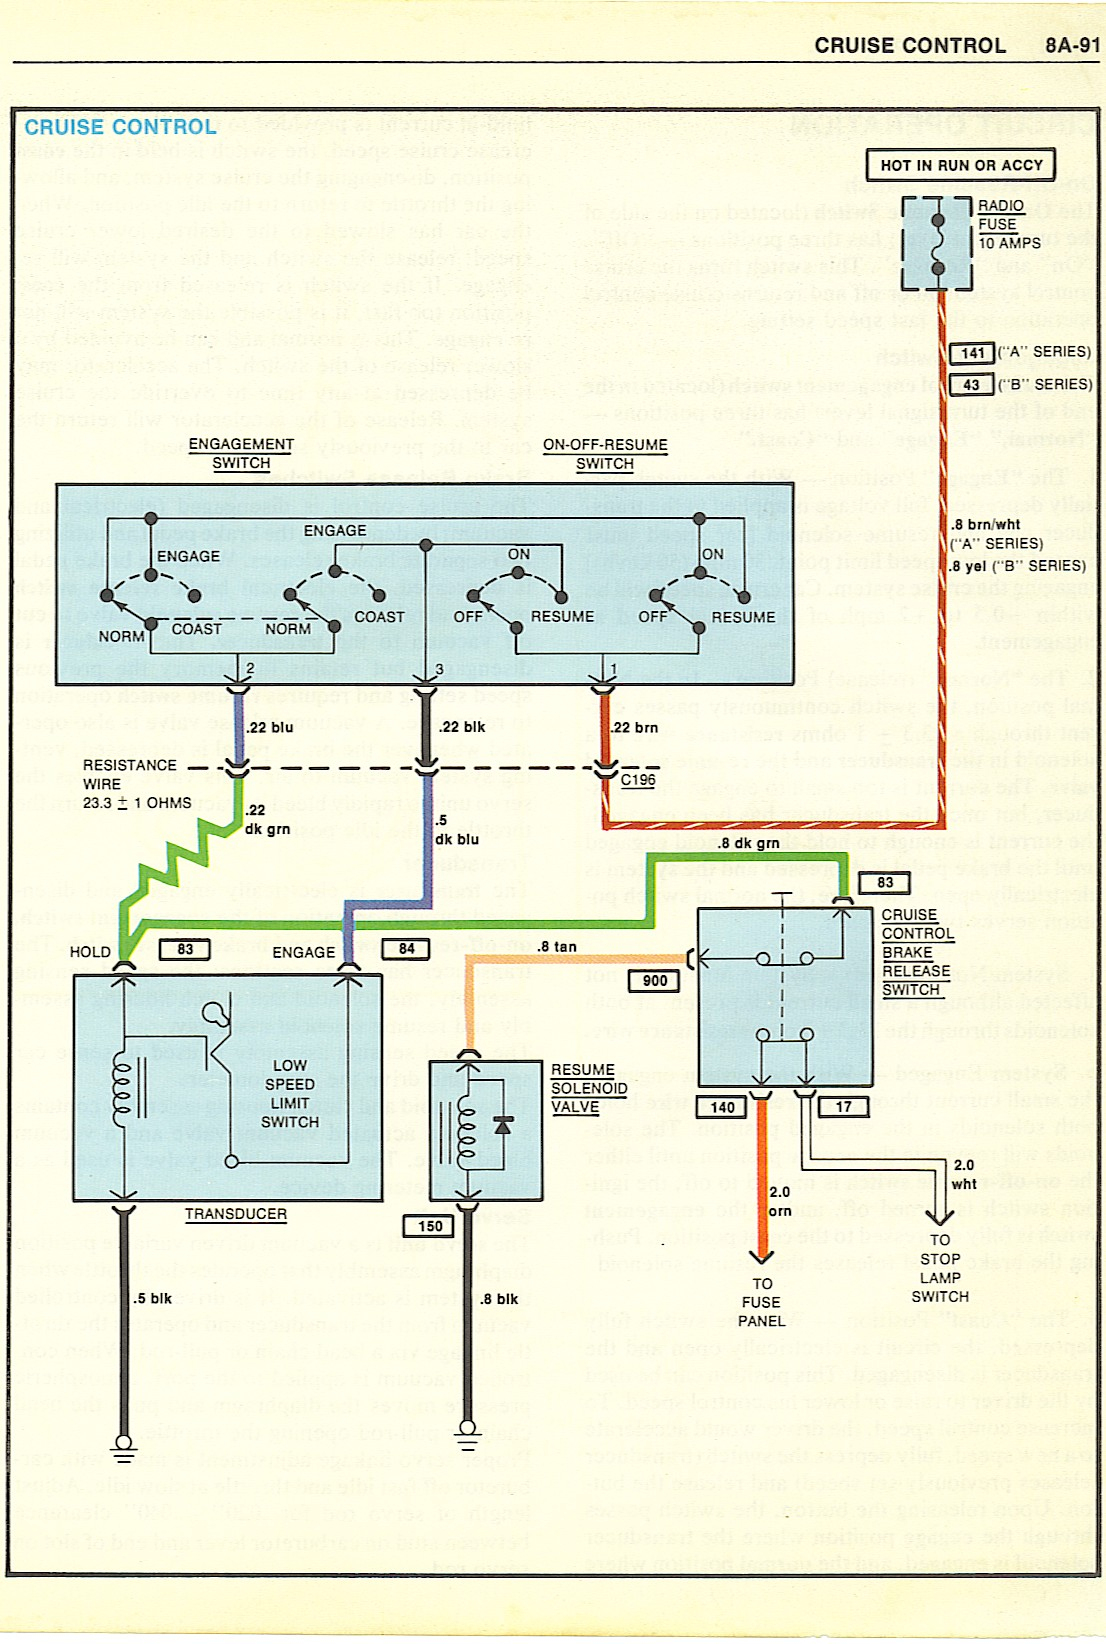 W900 Cummins Engine Wiring Harness Diagram | Wiring Library - Kenworth W900 Wiring Diagram